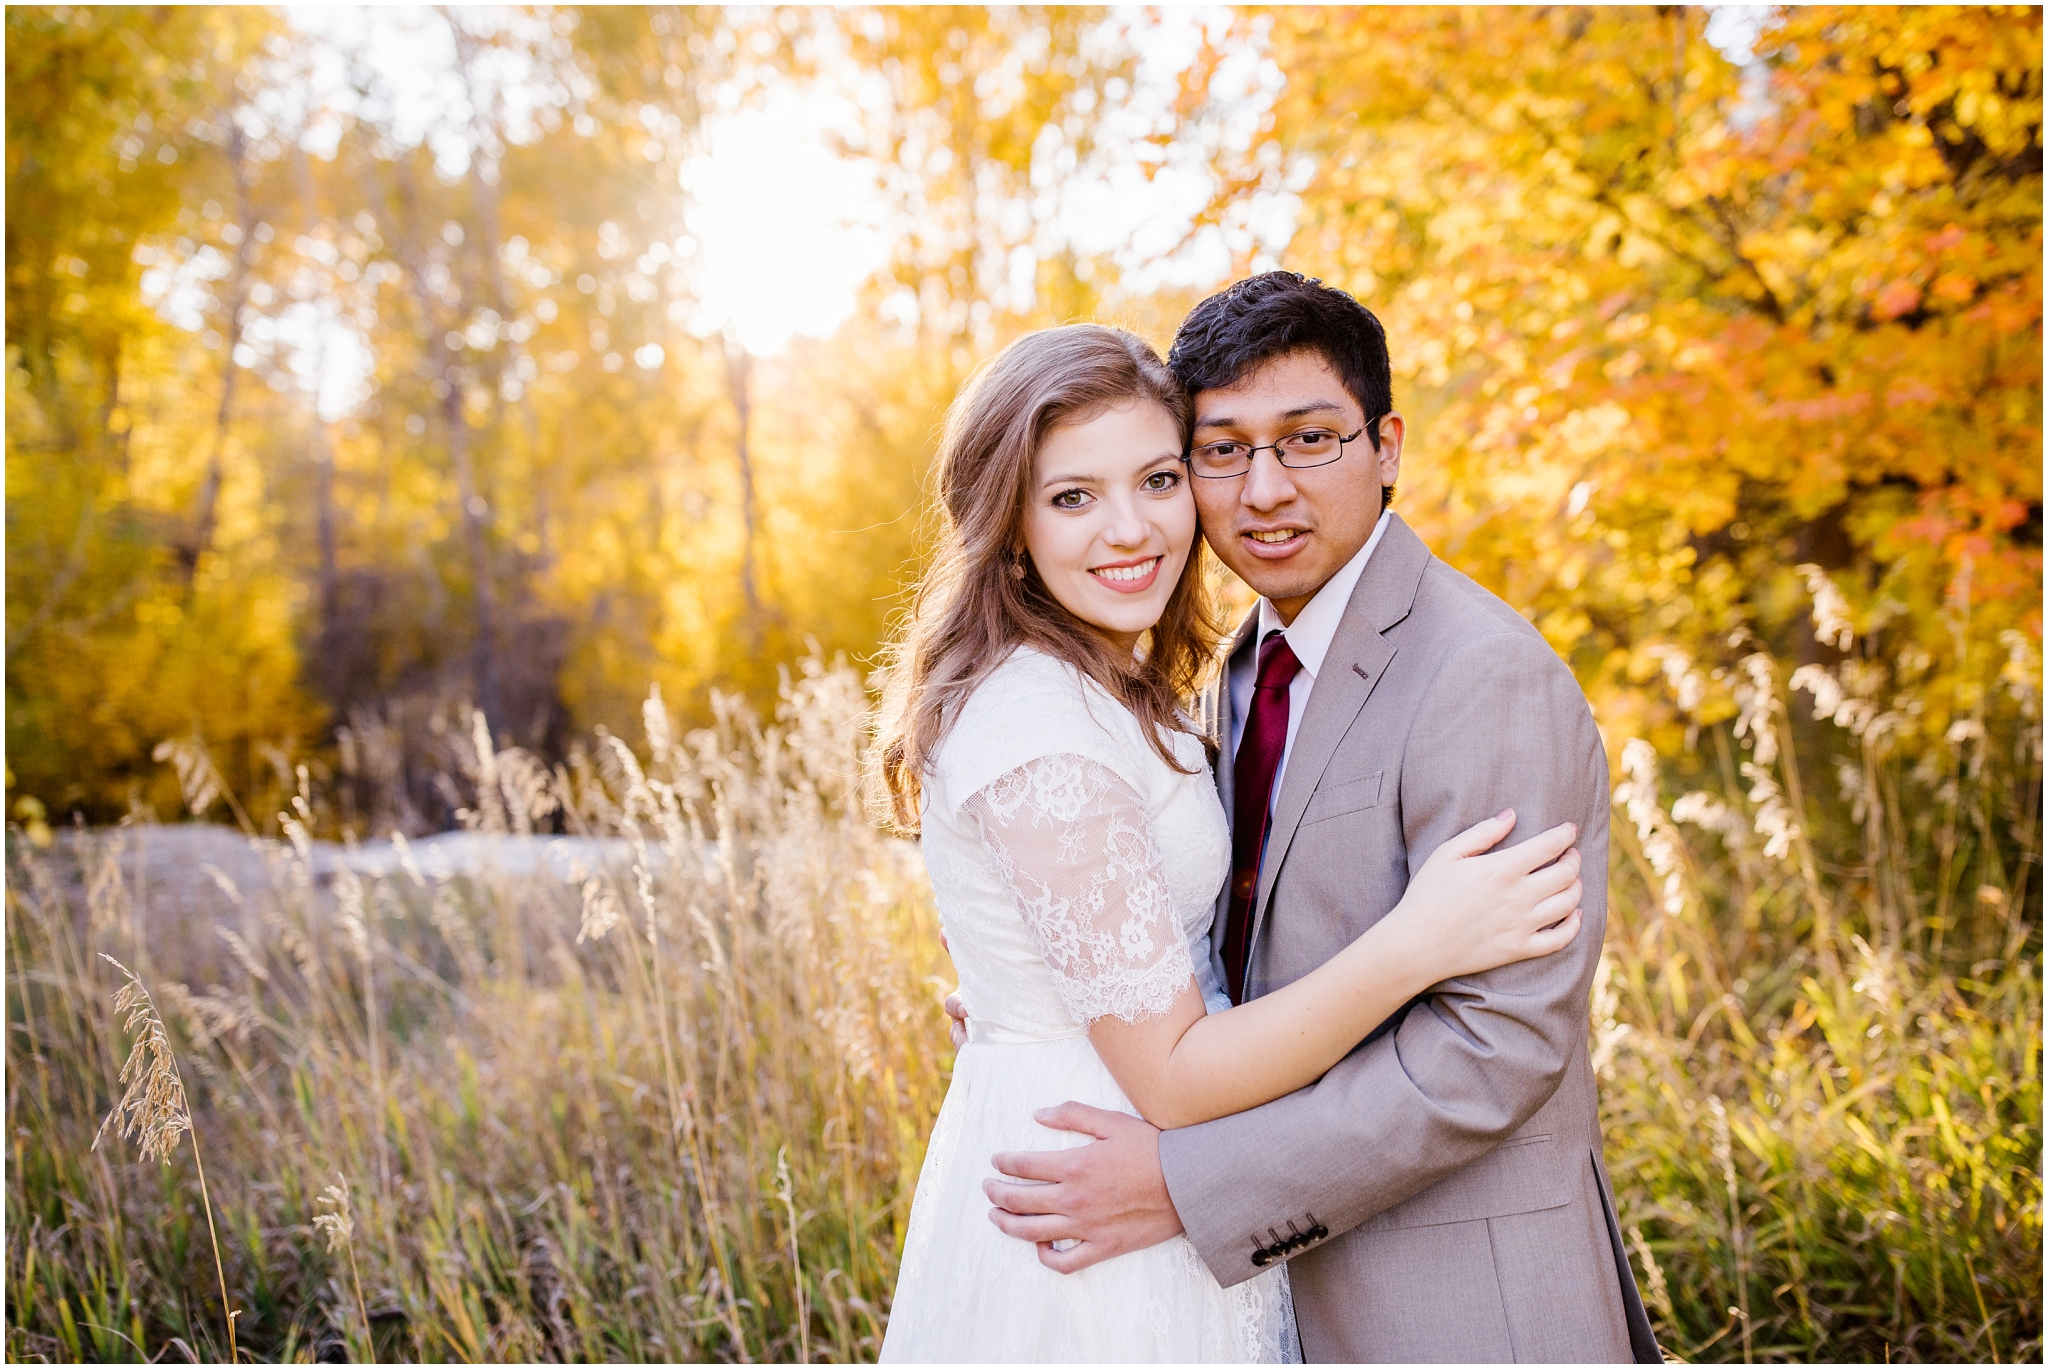 HE-BRIDALS-82_Lizzie-B-Imagery-Utah-Wedding-Photographer-Central-Utah-Park-City-Salt-Lake-City-Hobble-Creek-Canyon-Springville.jpg